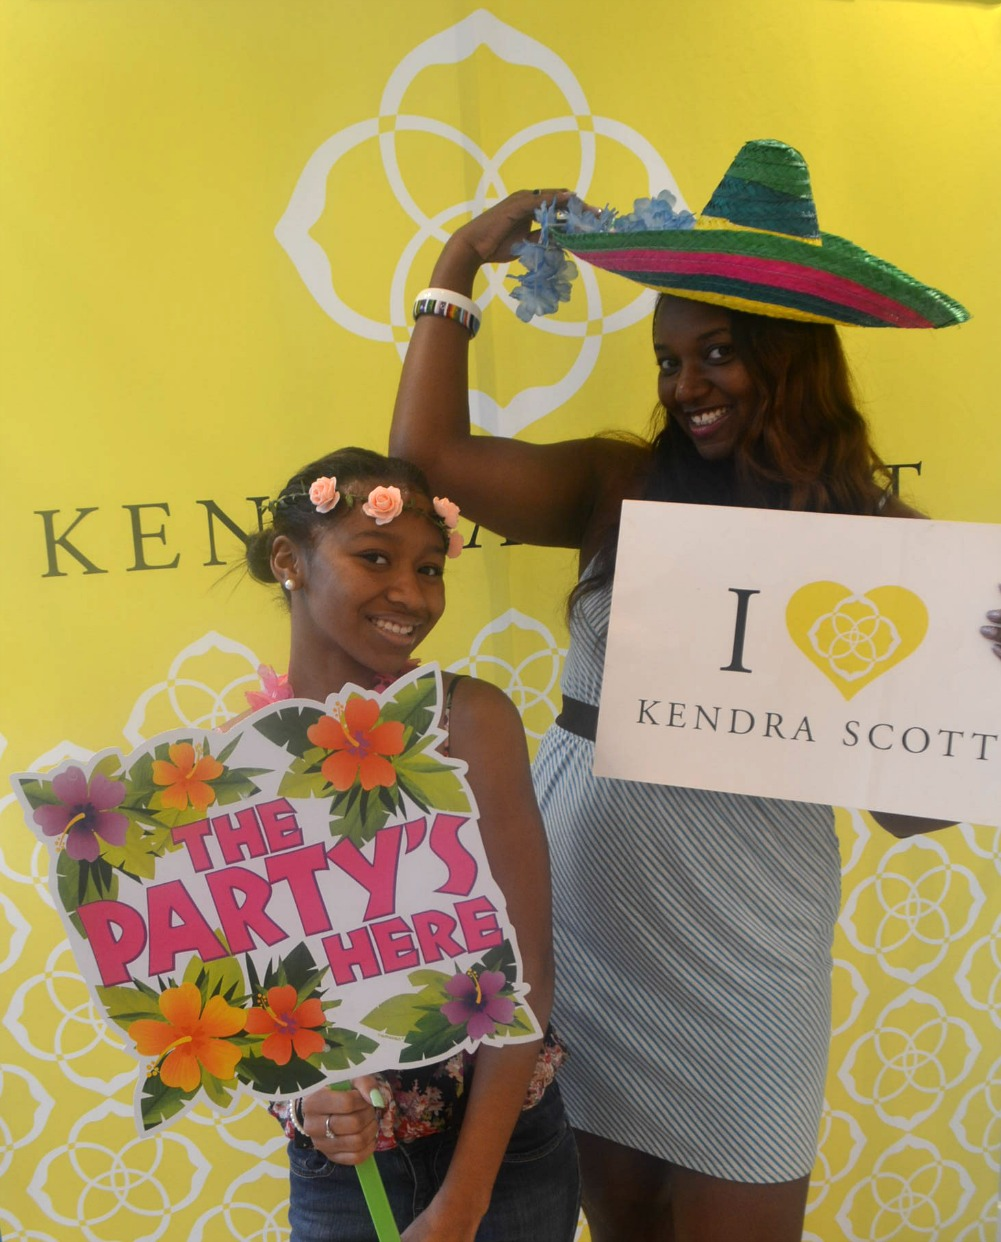 kendra-scott-kiwi-the-beauty15